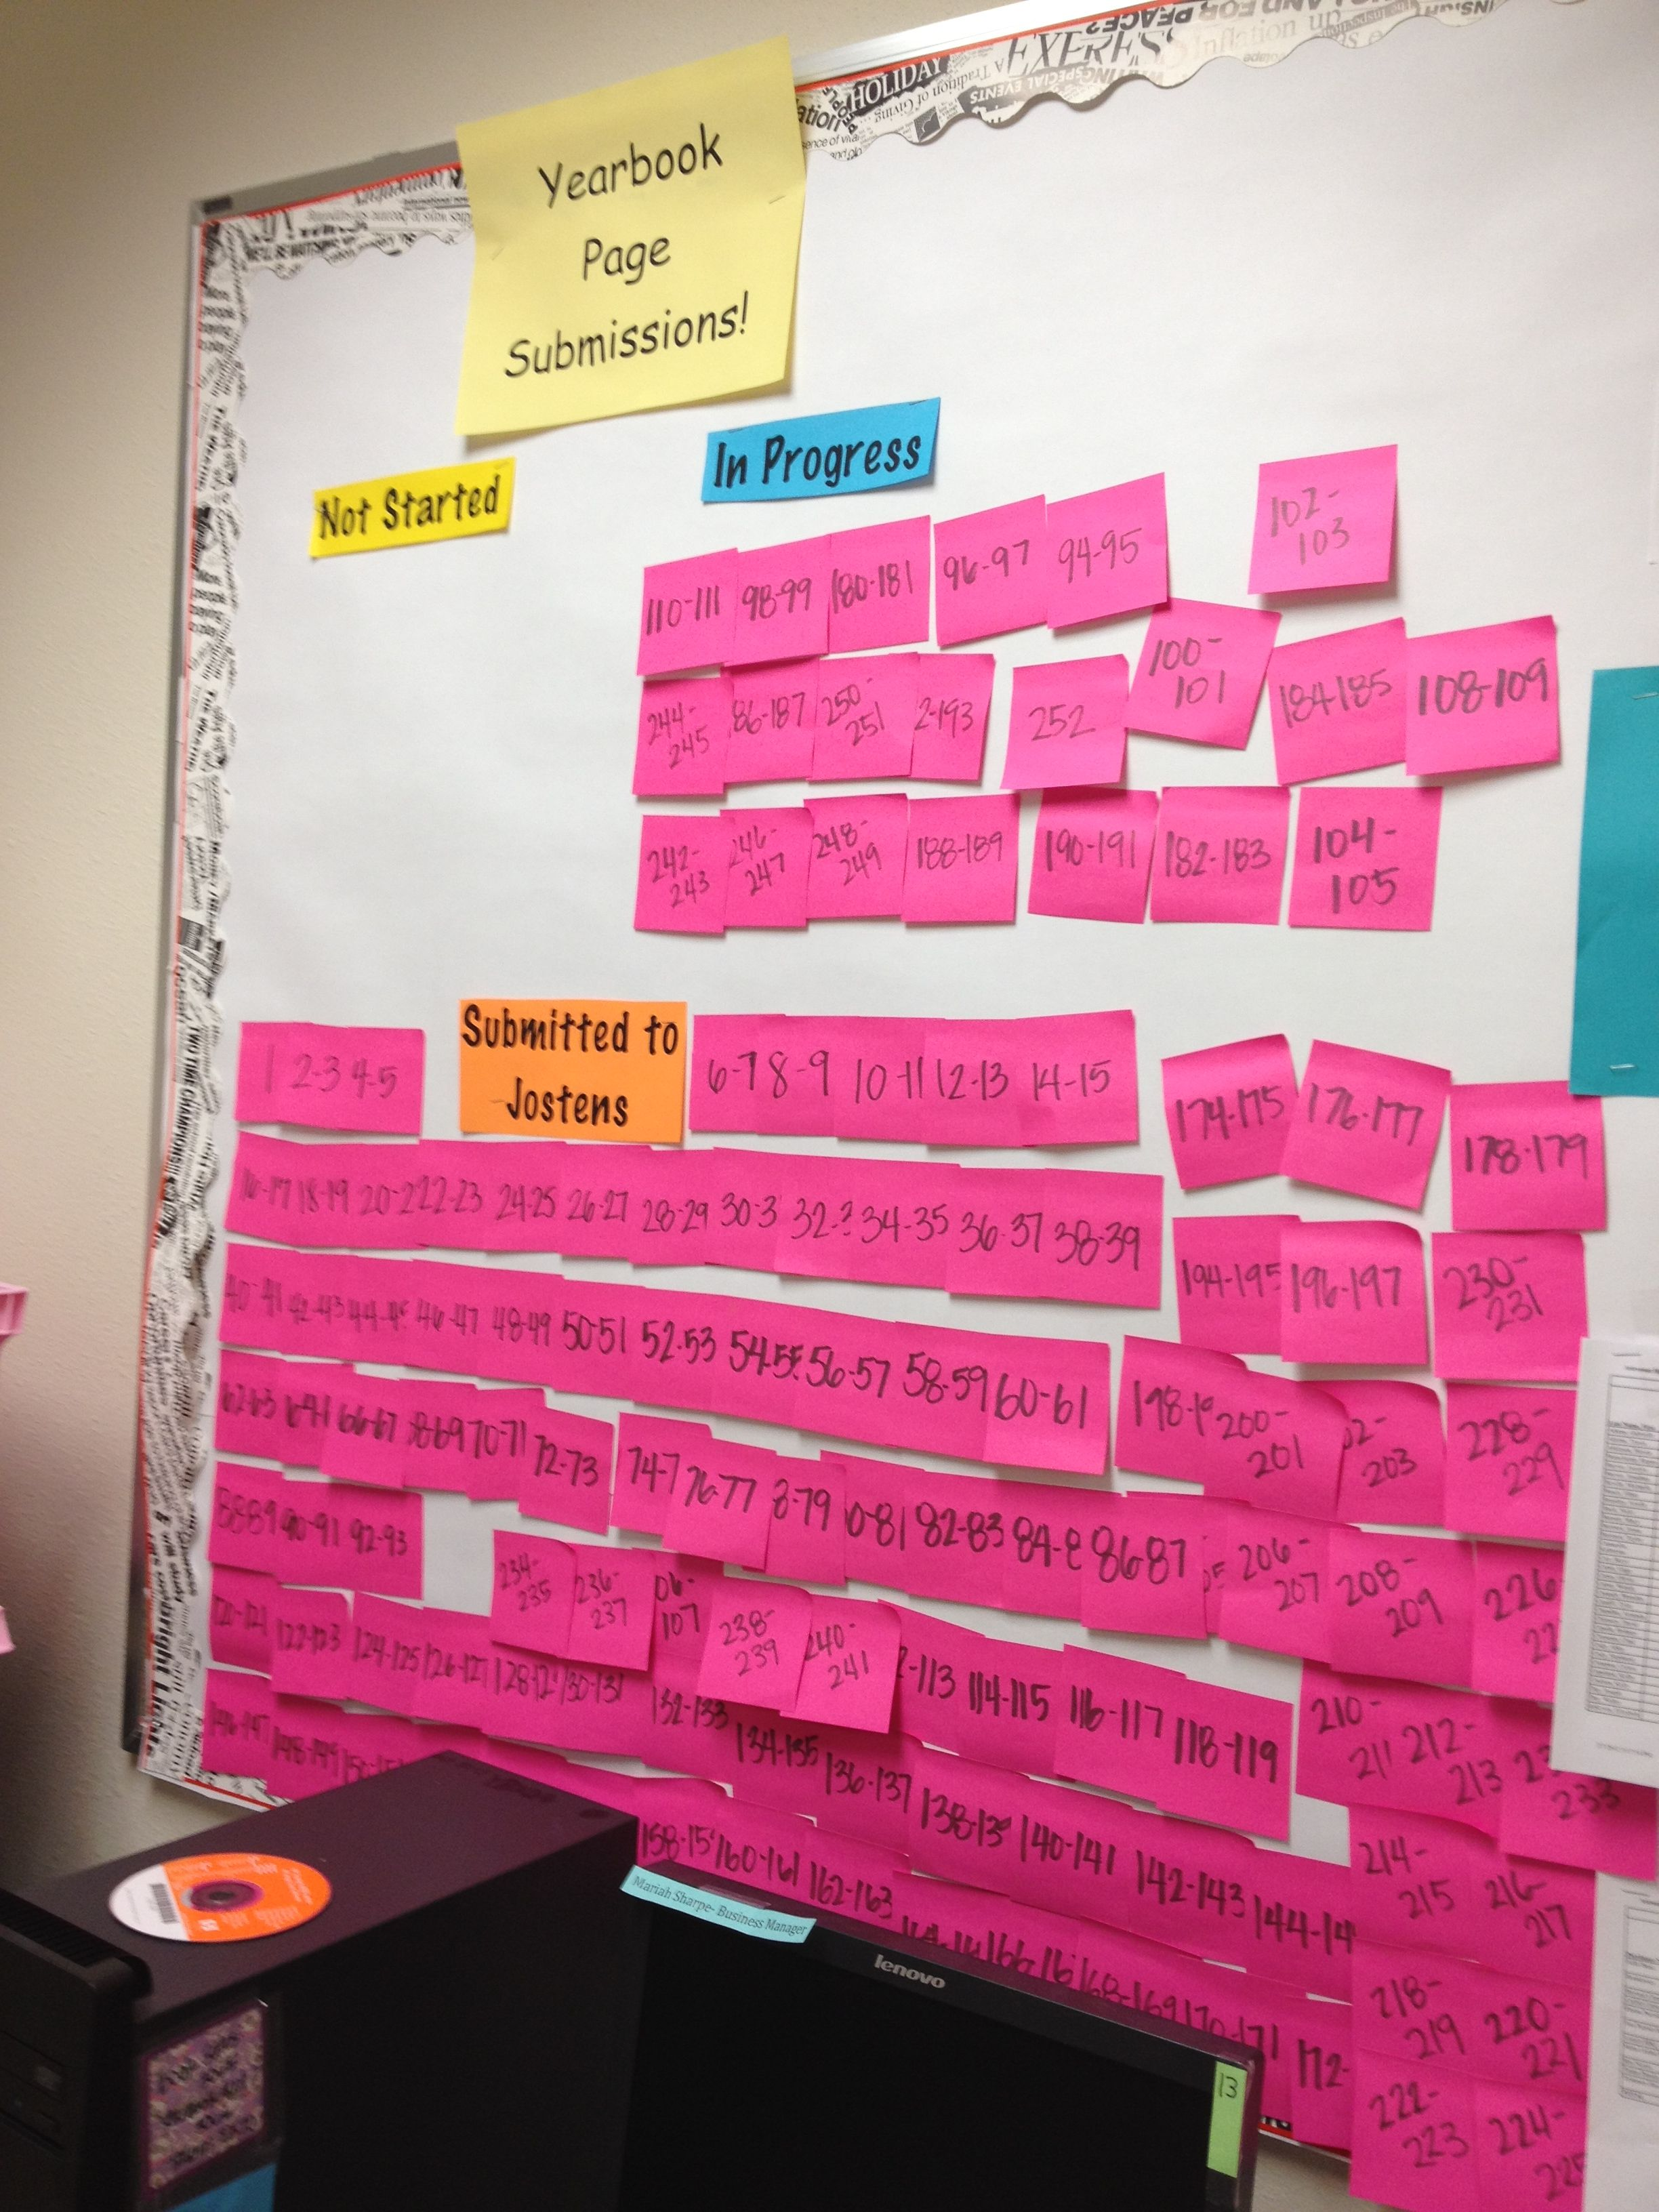 Neat idea movable ladder by using postit notes to show where p